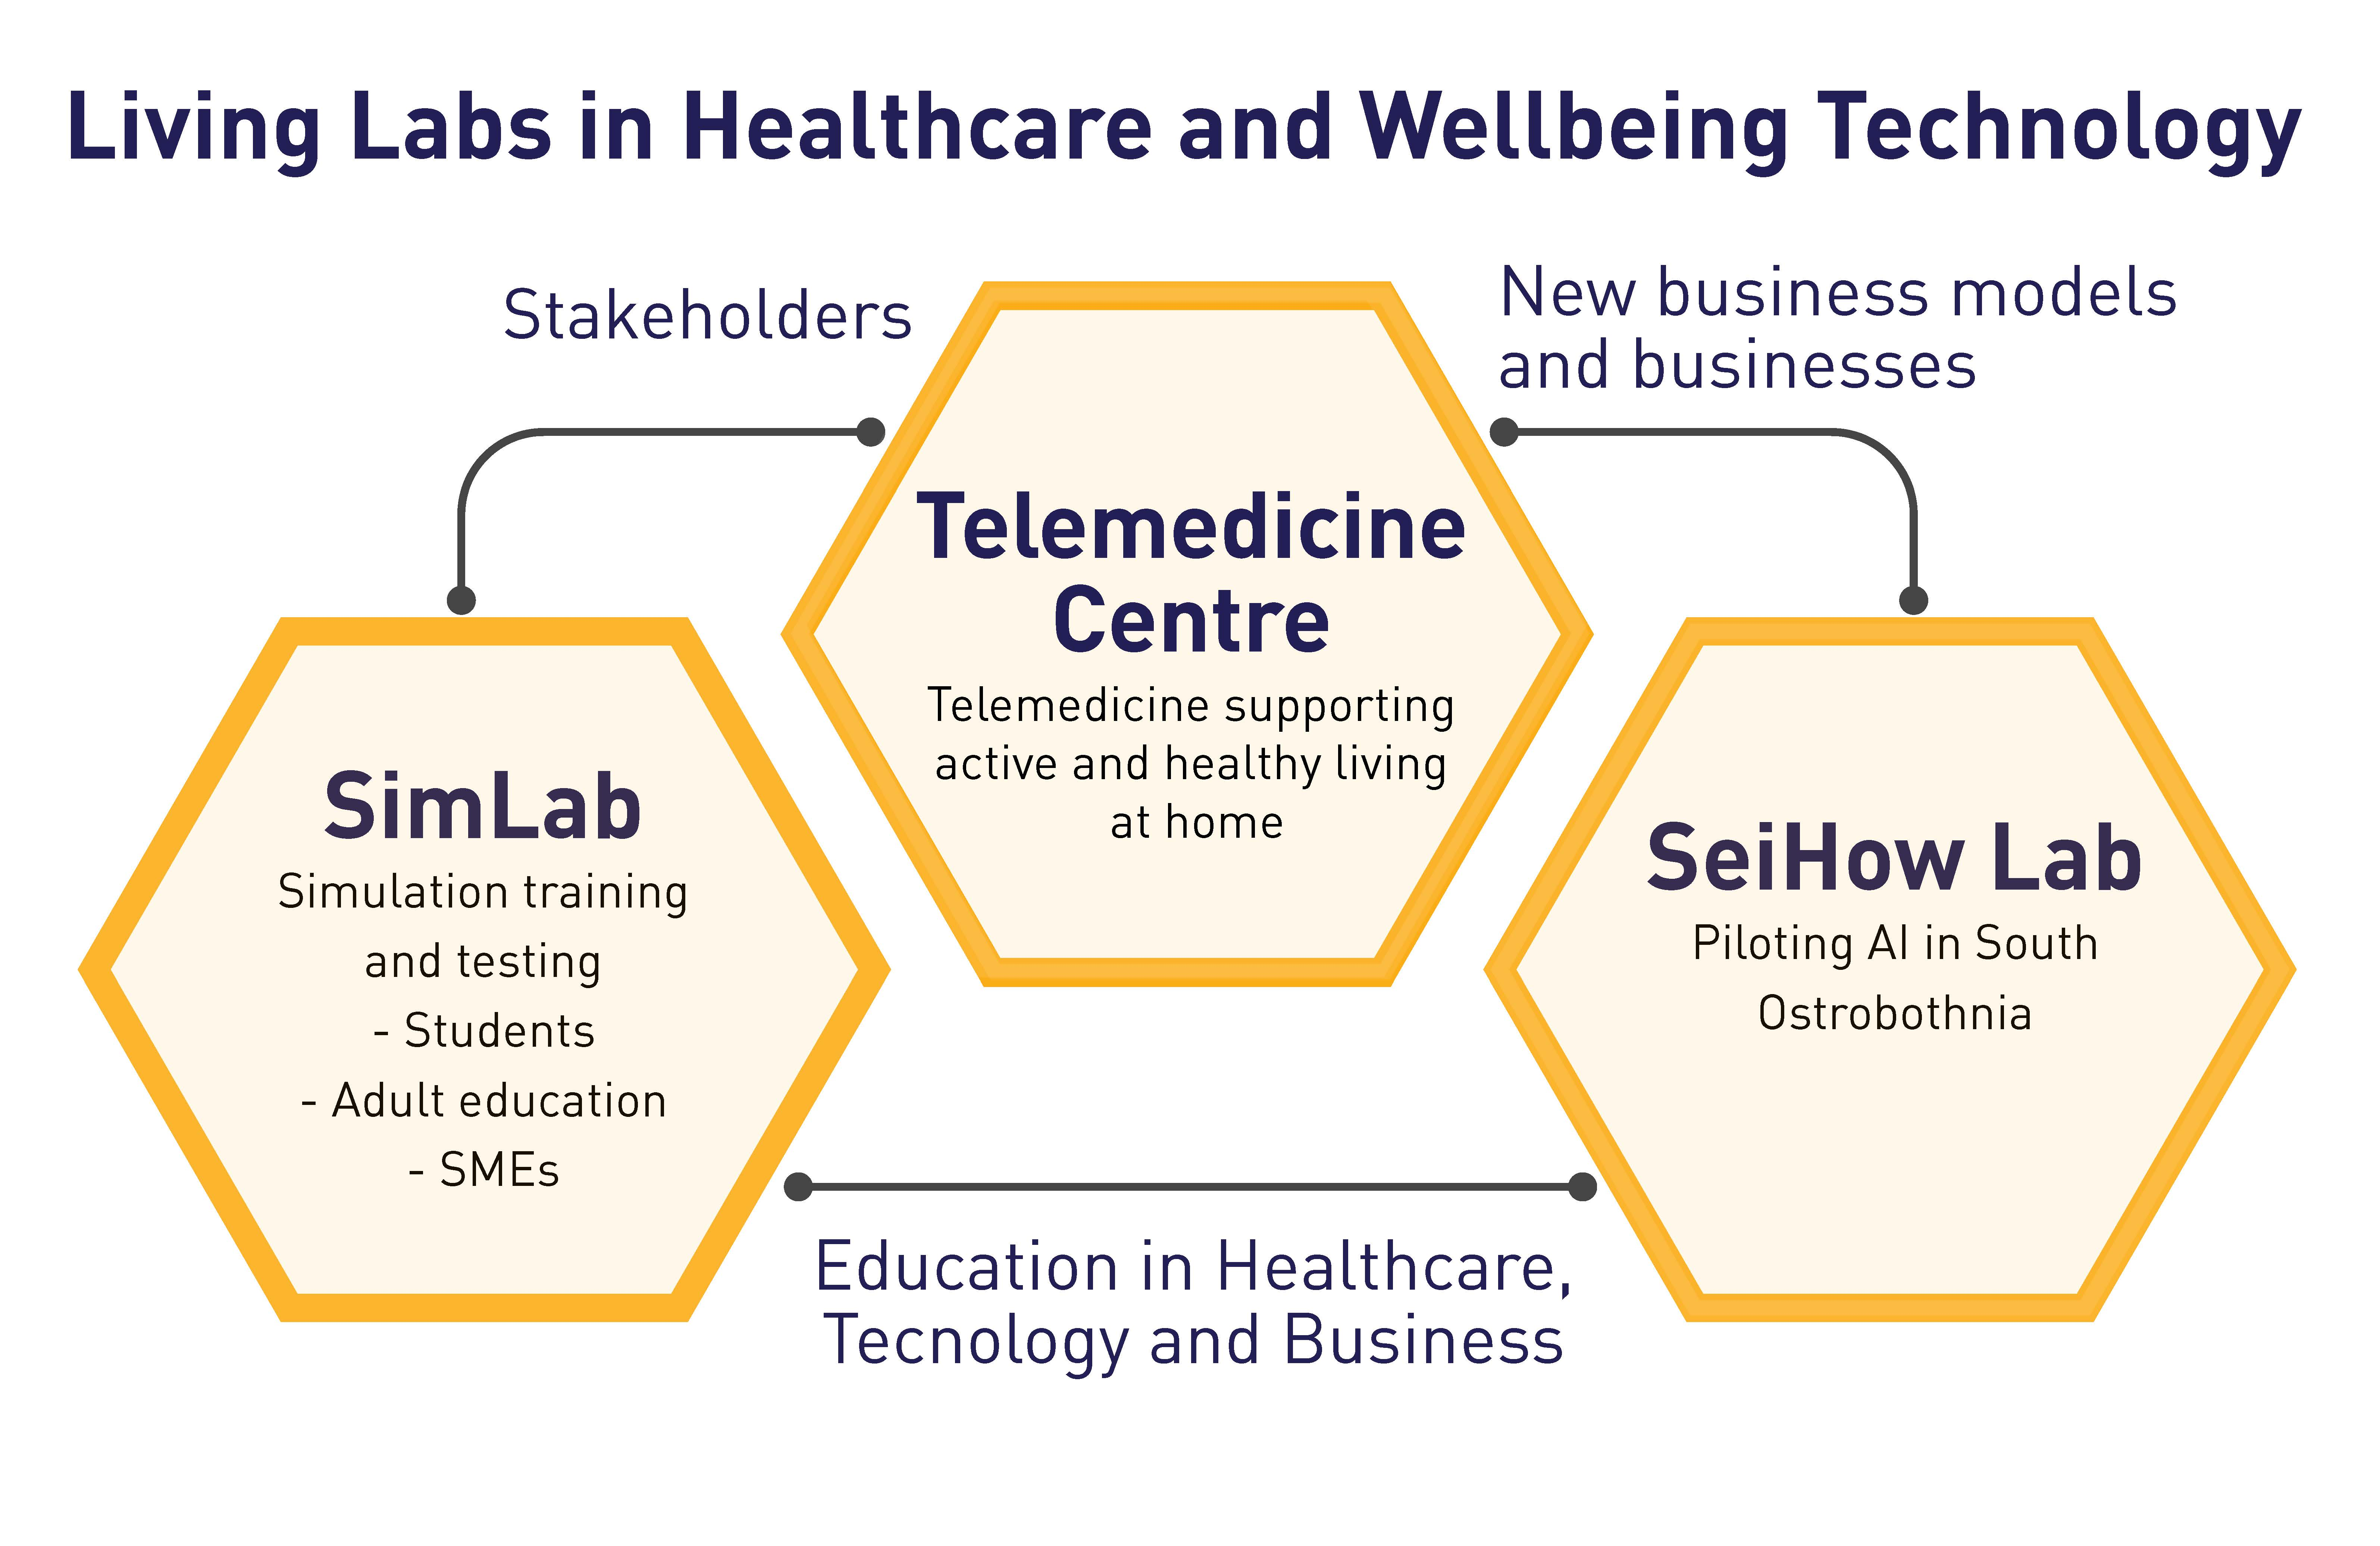 The figure is illustrating the three major Living Labs in Healthcare and Wellbeing Technology at SeAMK: Telemedicine Centre, Simulation Lab, and SeiHoW Lab.